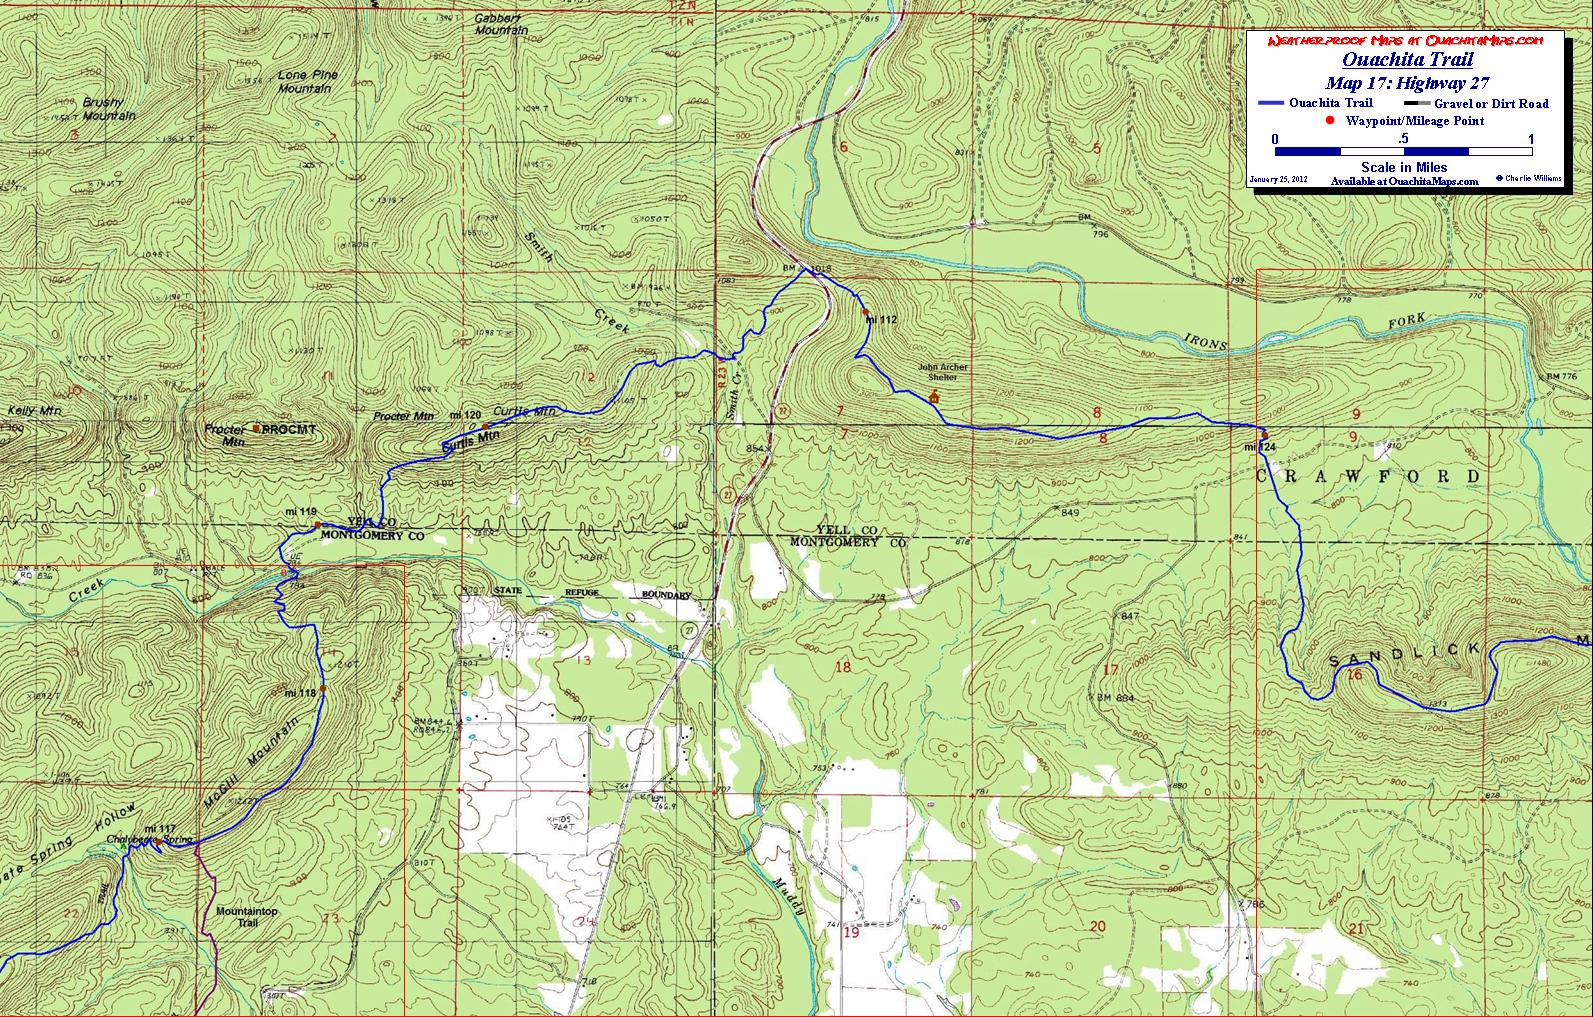 Ouachita Trail Maps Ouachita Mountains OKAR Free